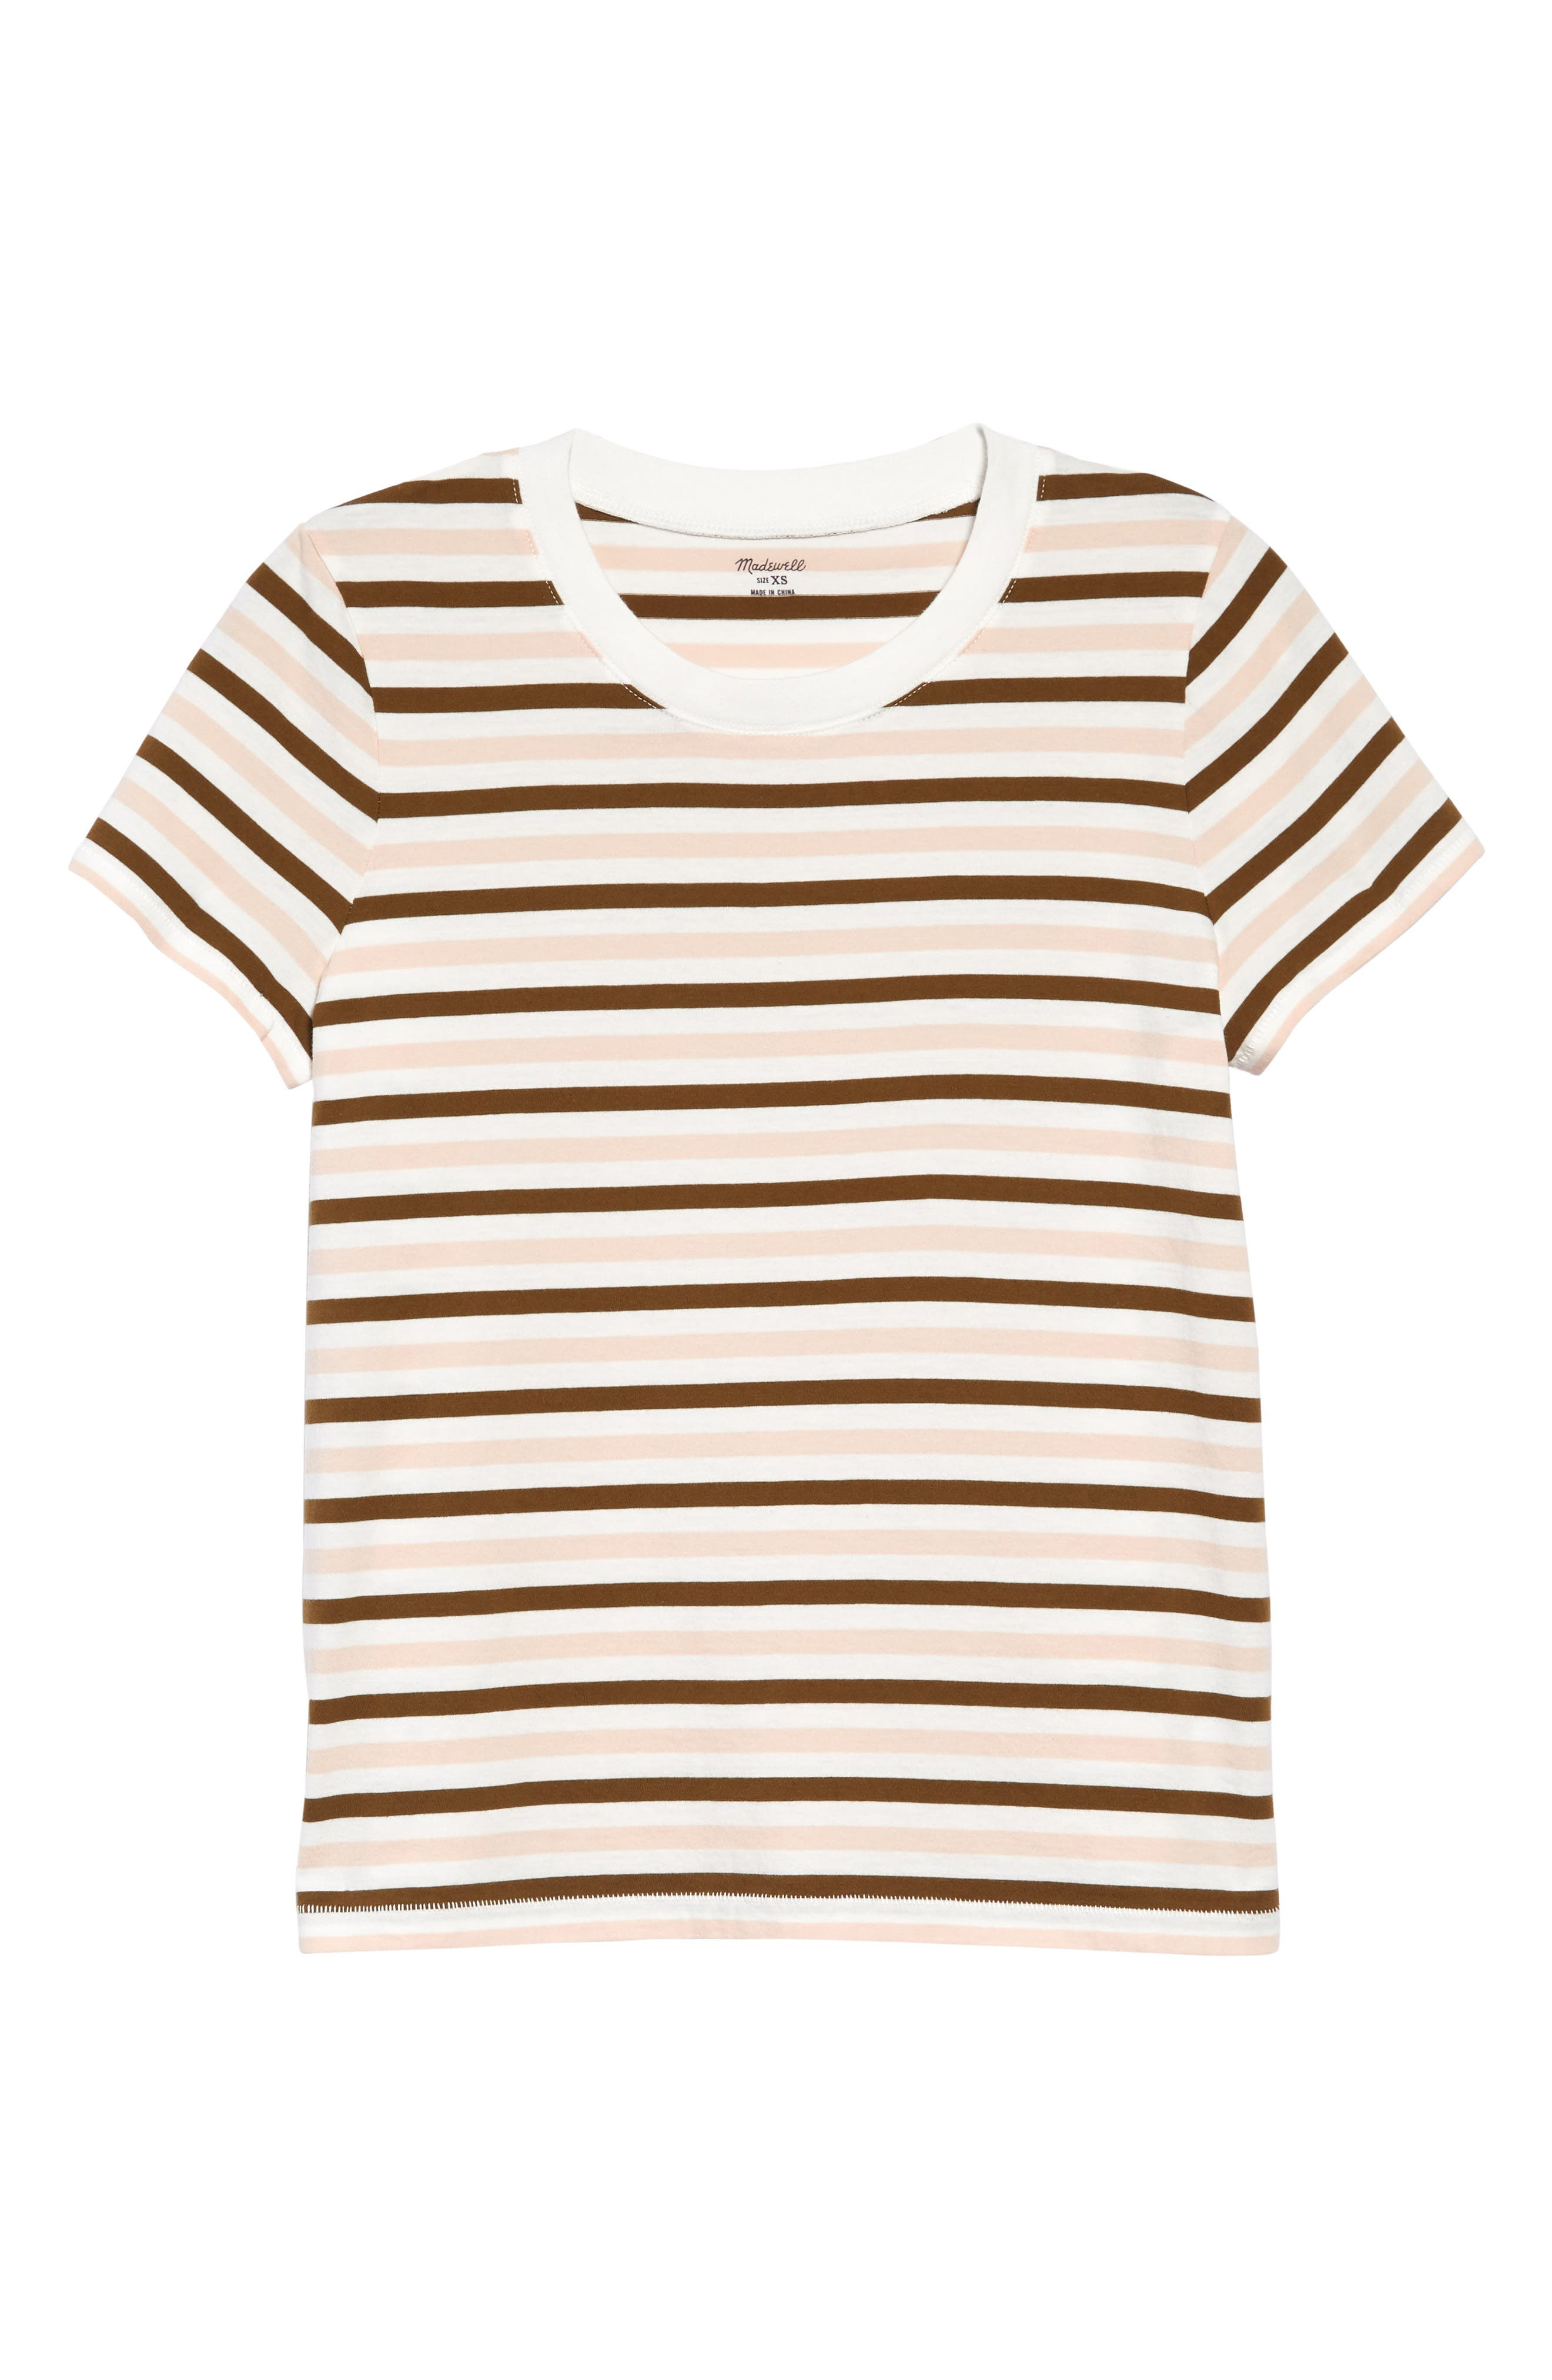 70s Clothes | Hippie Clothes & Outfits Madewell Northside Vintage Stripe T-Shirt - Doberman Stripe Peach Blush at Nordstrom Rack $12.97 AT vintagedancer.com